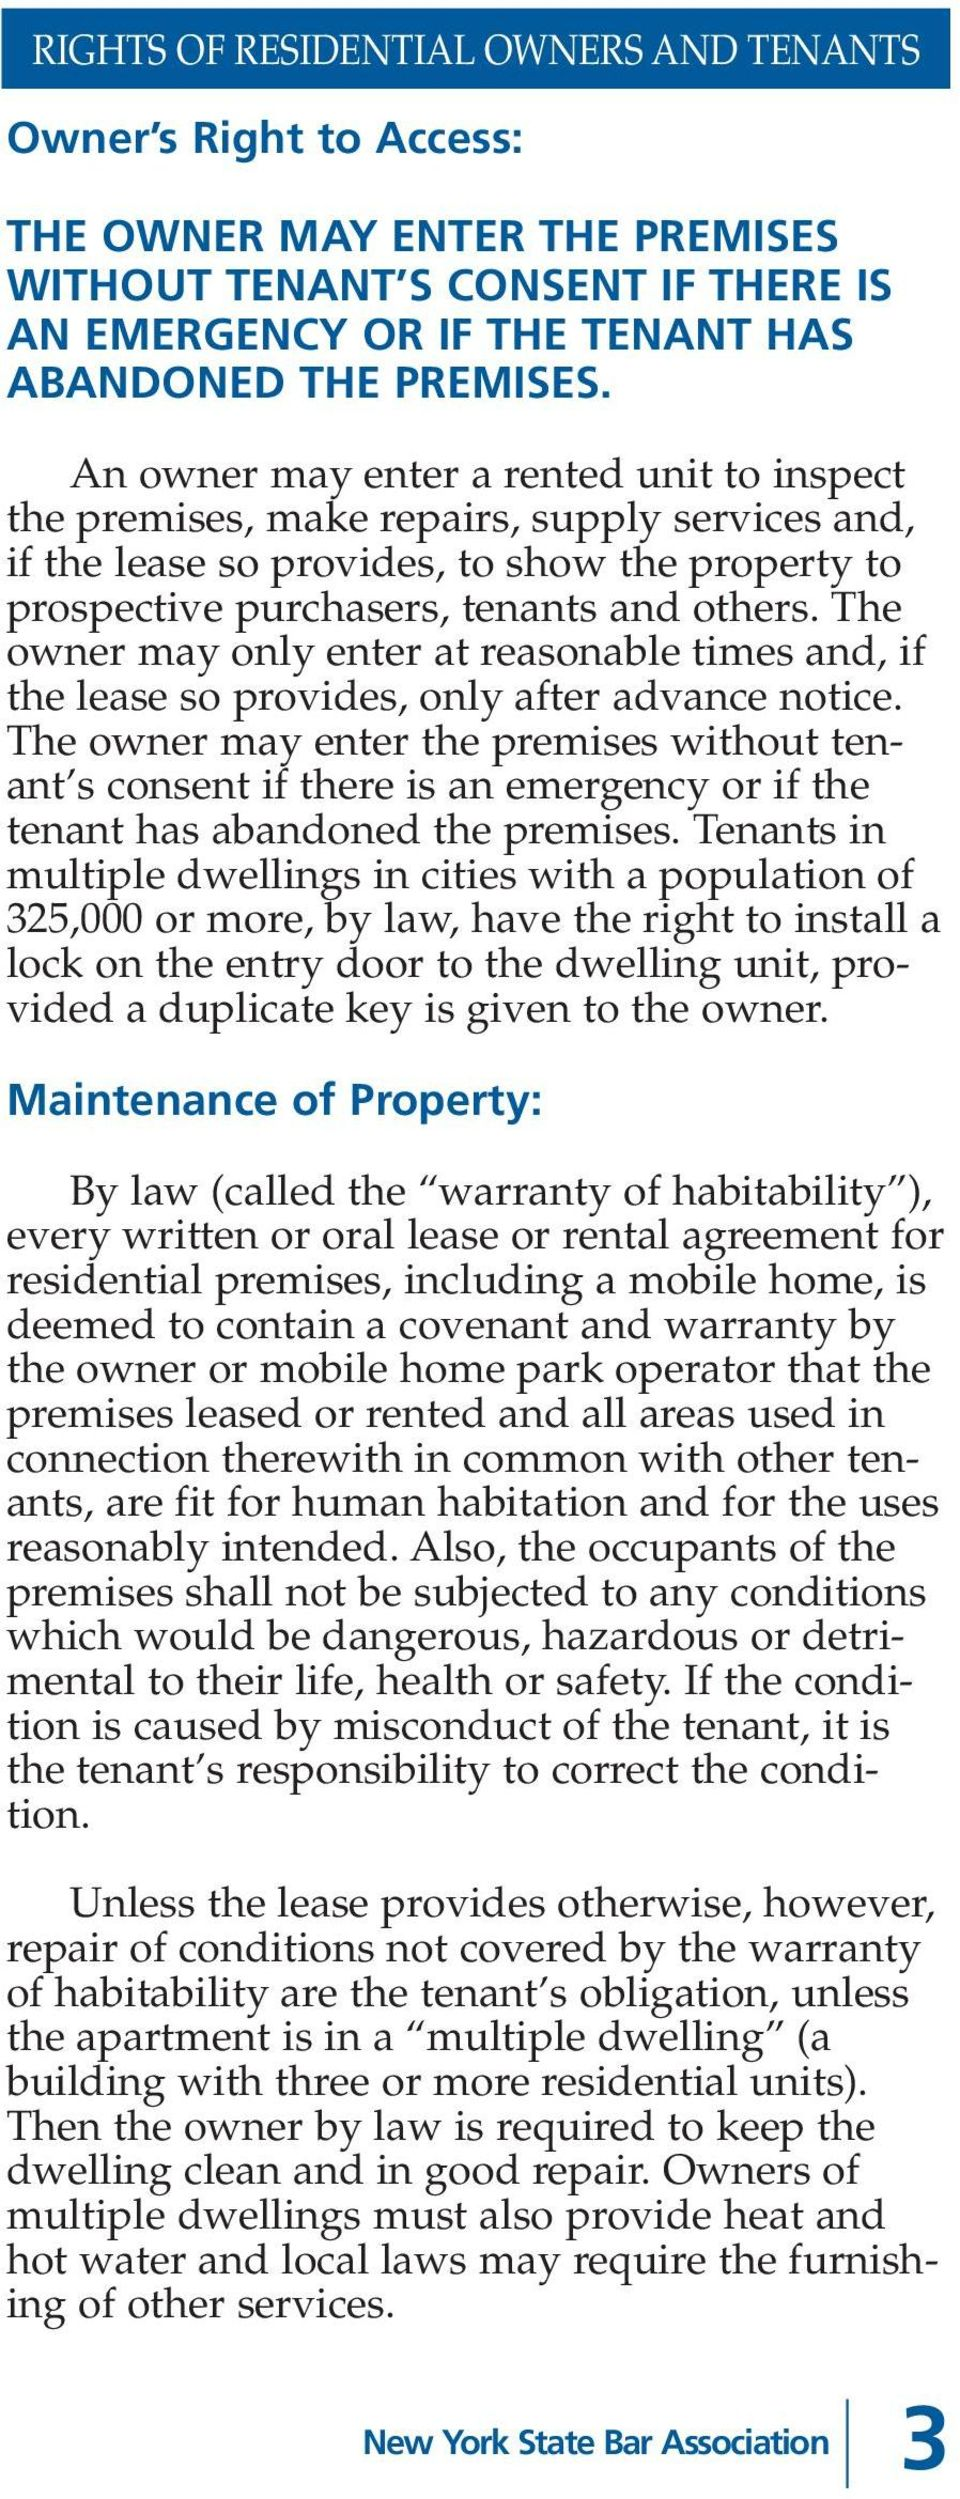 The owner may only enter at reasonable times and, if the lease so provides, only after advance notice.